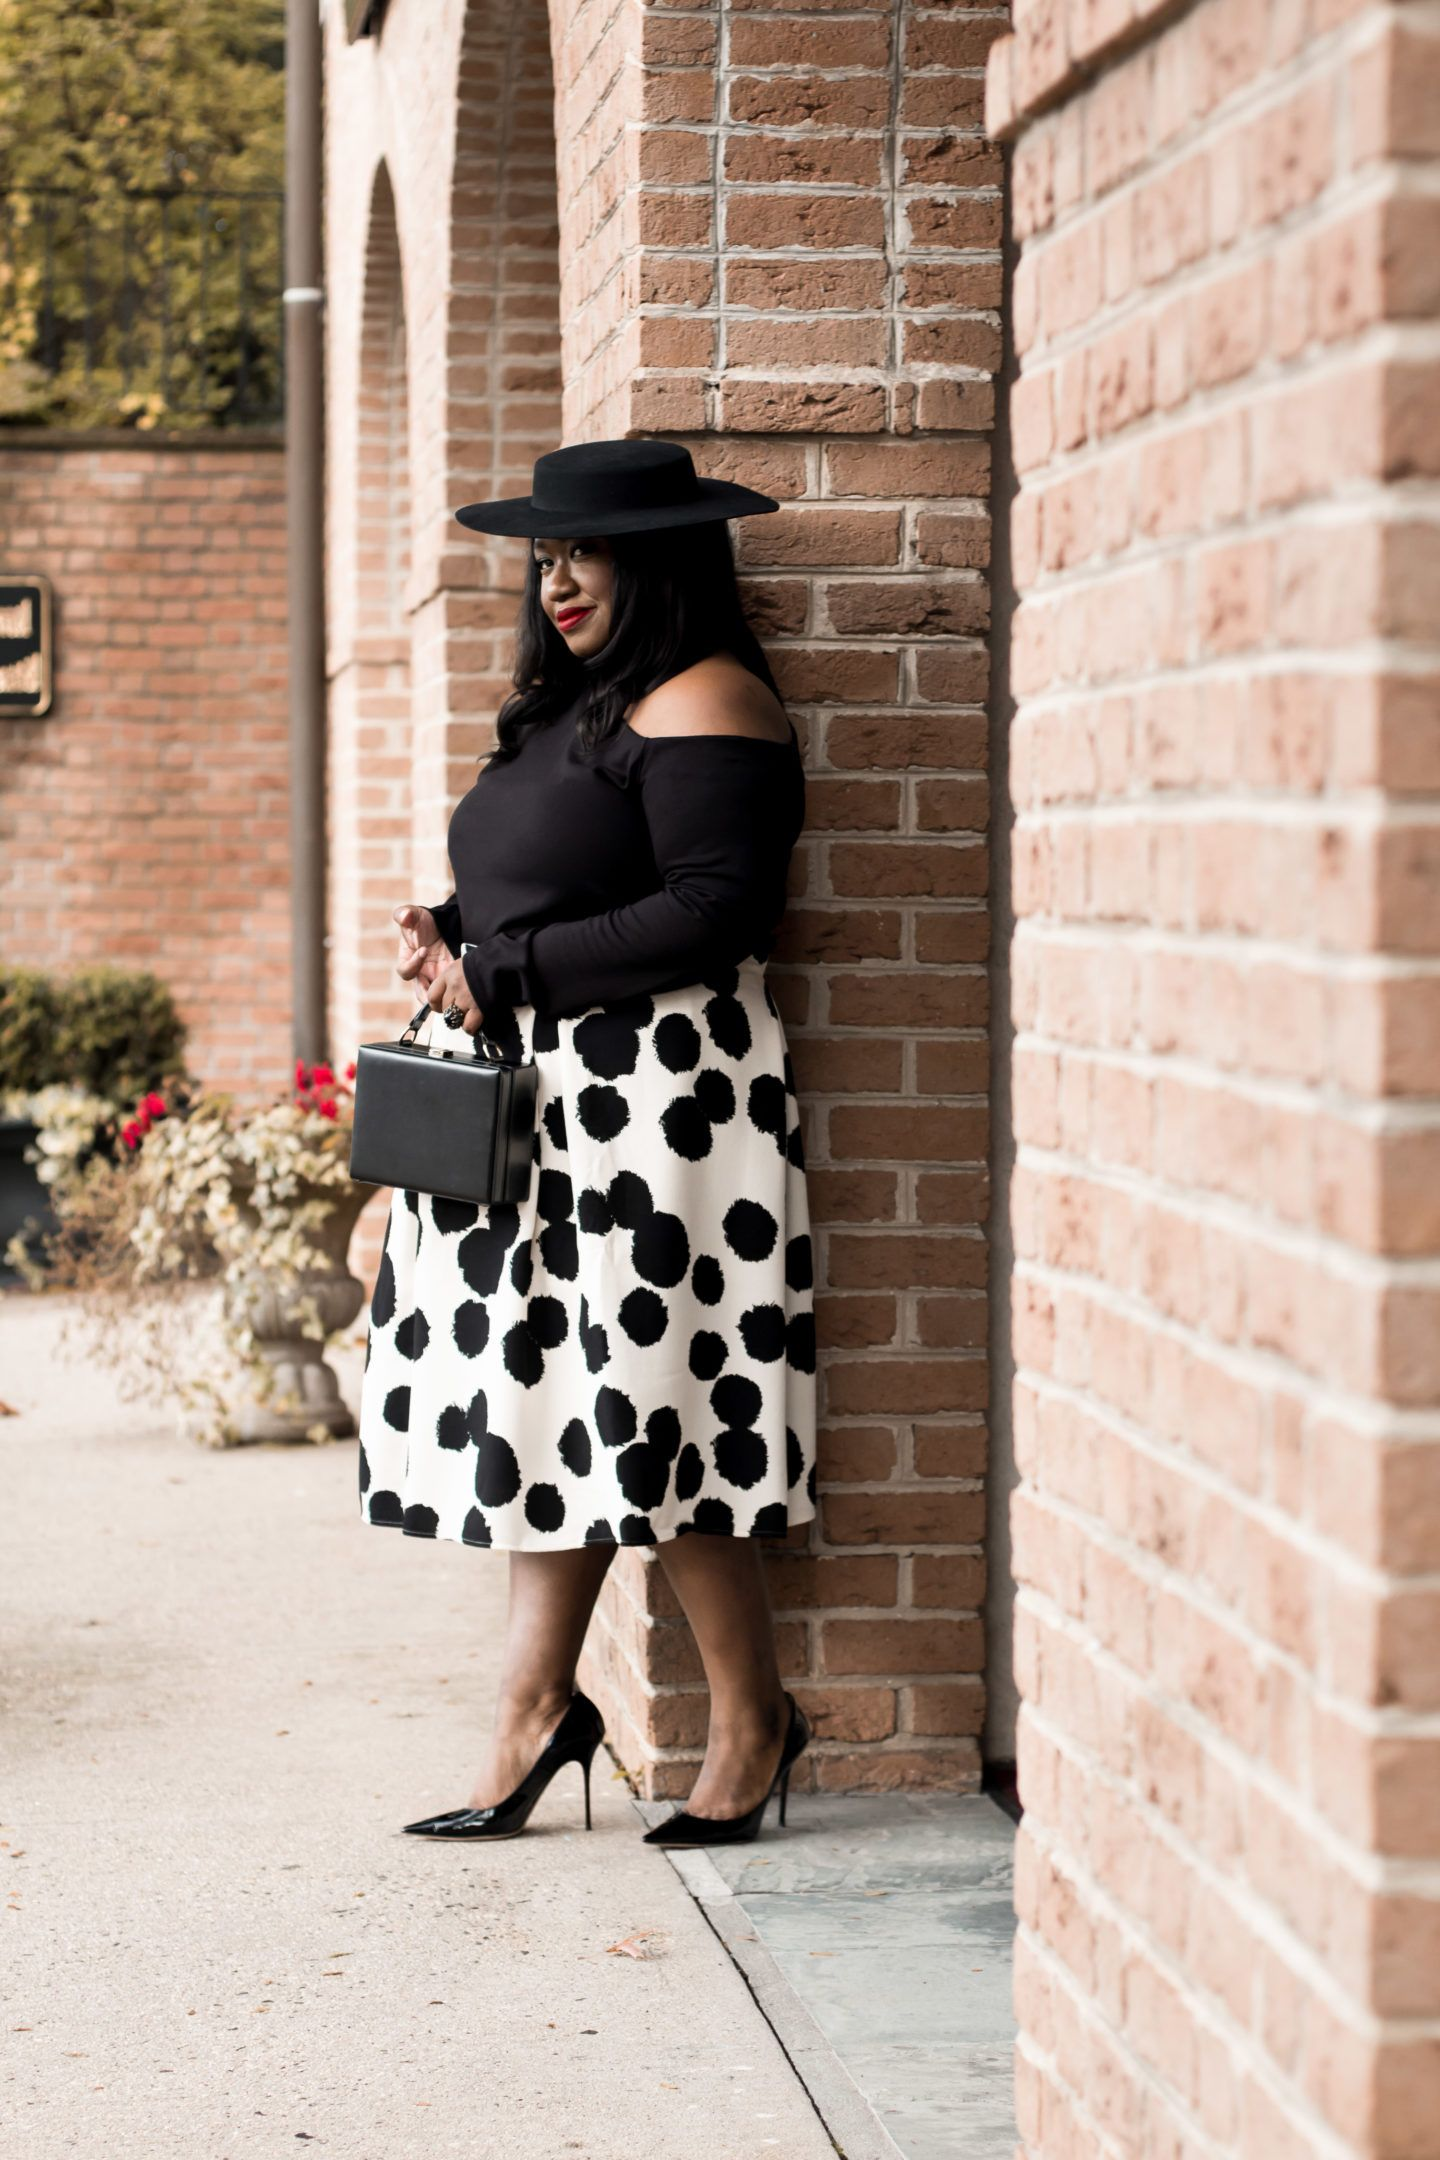 1bb22804d41 Plus Size Polka Dot Skirt Outfit • Plus Size Fashion • Plus Size Outfit  Idea • Shapely Chic Sheri  plussize  plussizefashion  style   styleinspiration  ootd ...